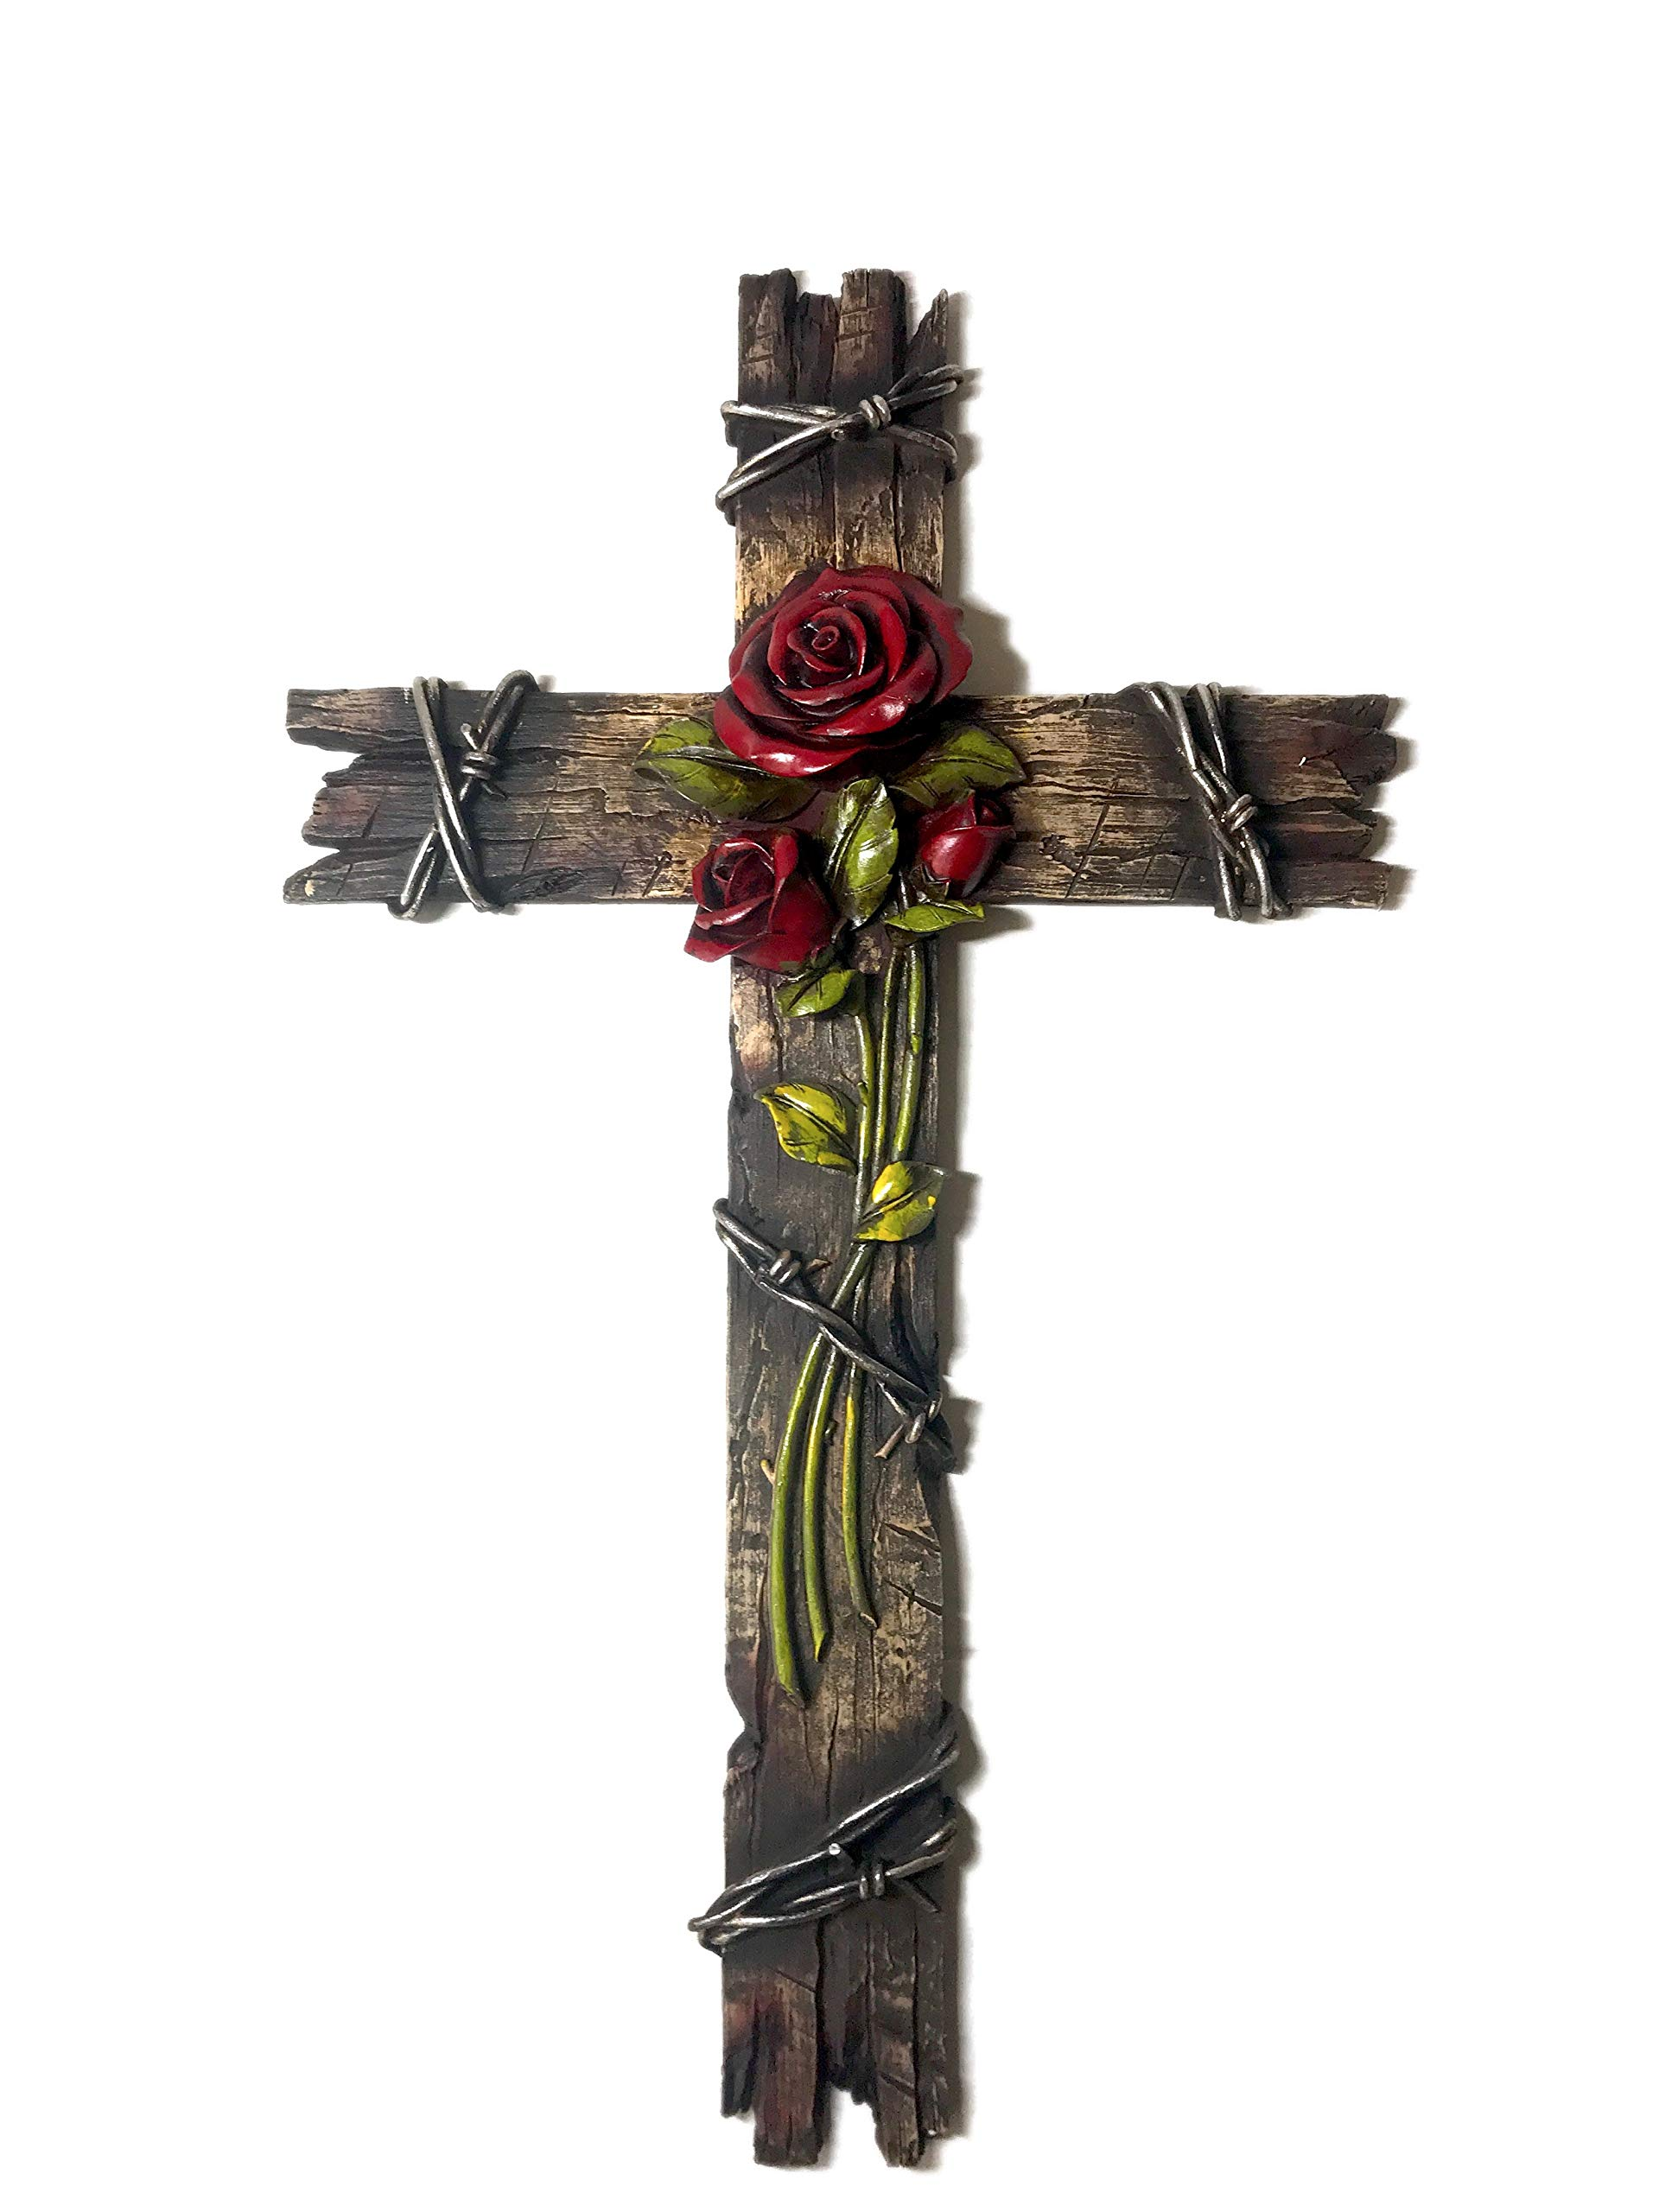 Polly House 20 inch Rose with Wood Look Cross Wall Cross for Home Decoration and Great for Gifts 8407